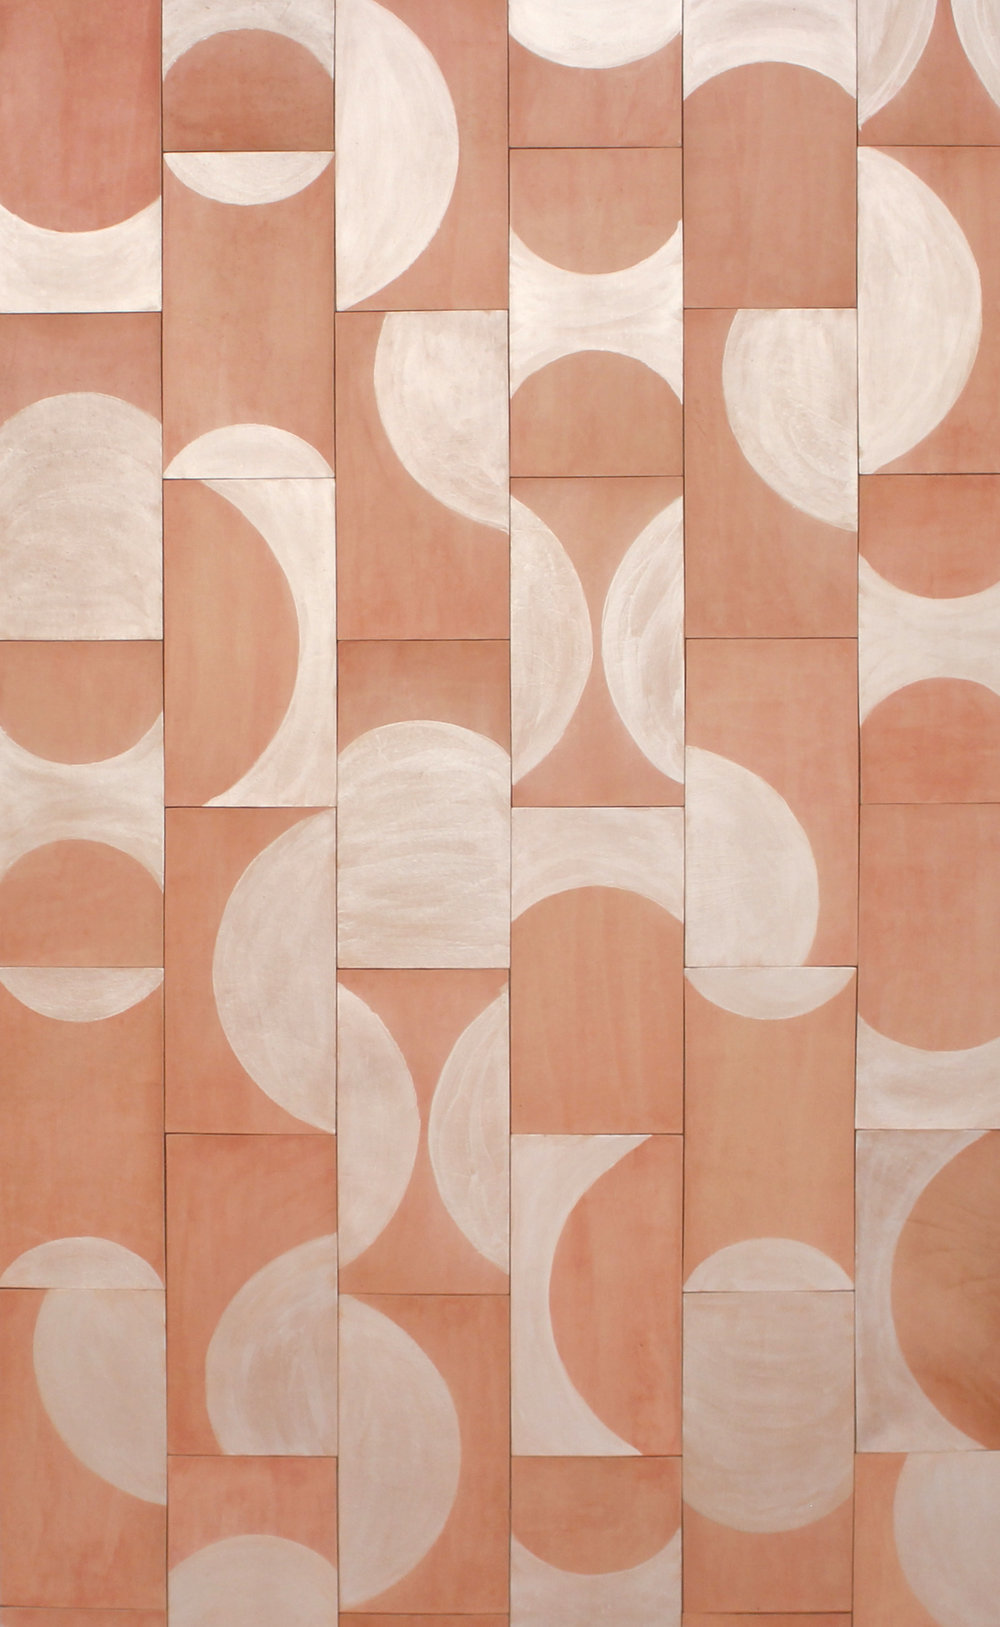 Pivot Leather tile shown in frosted coral